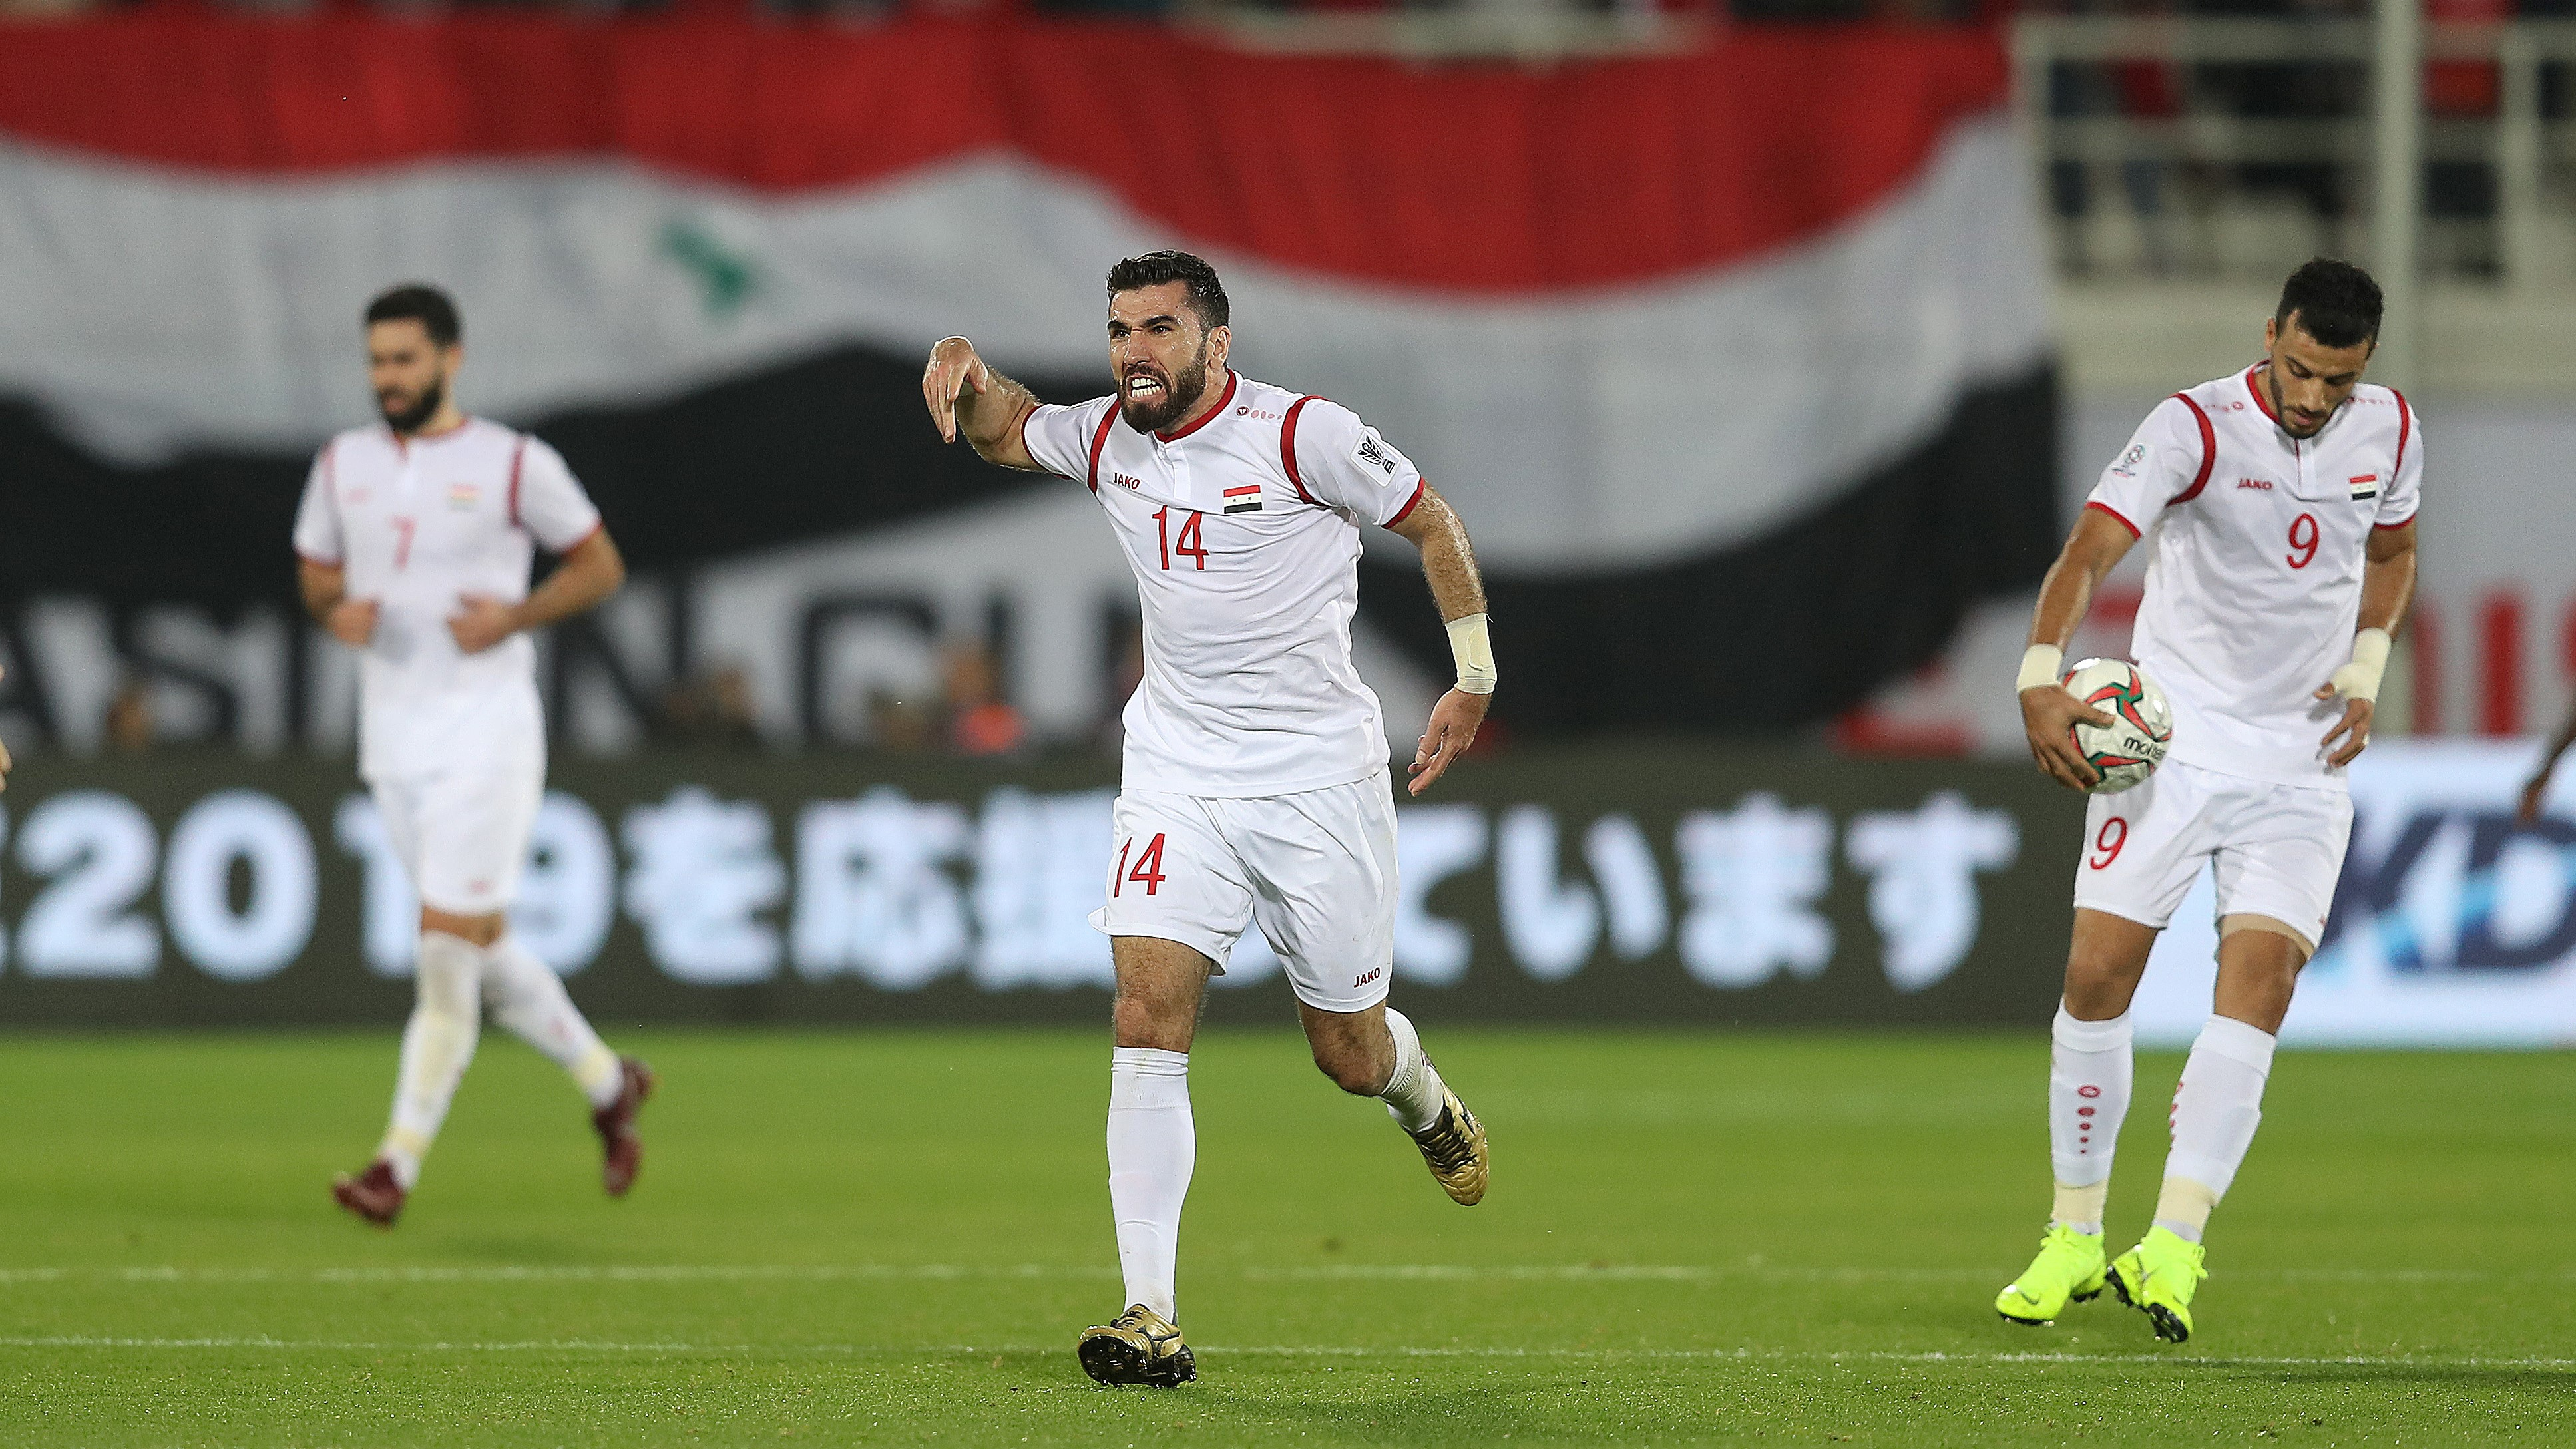 Syria AFC Asian Cup 2019